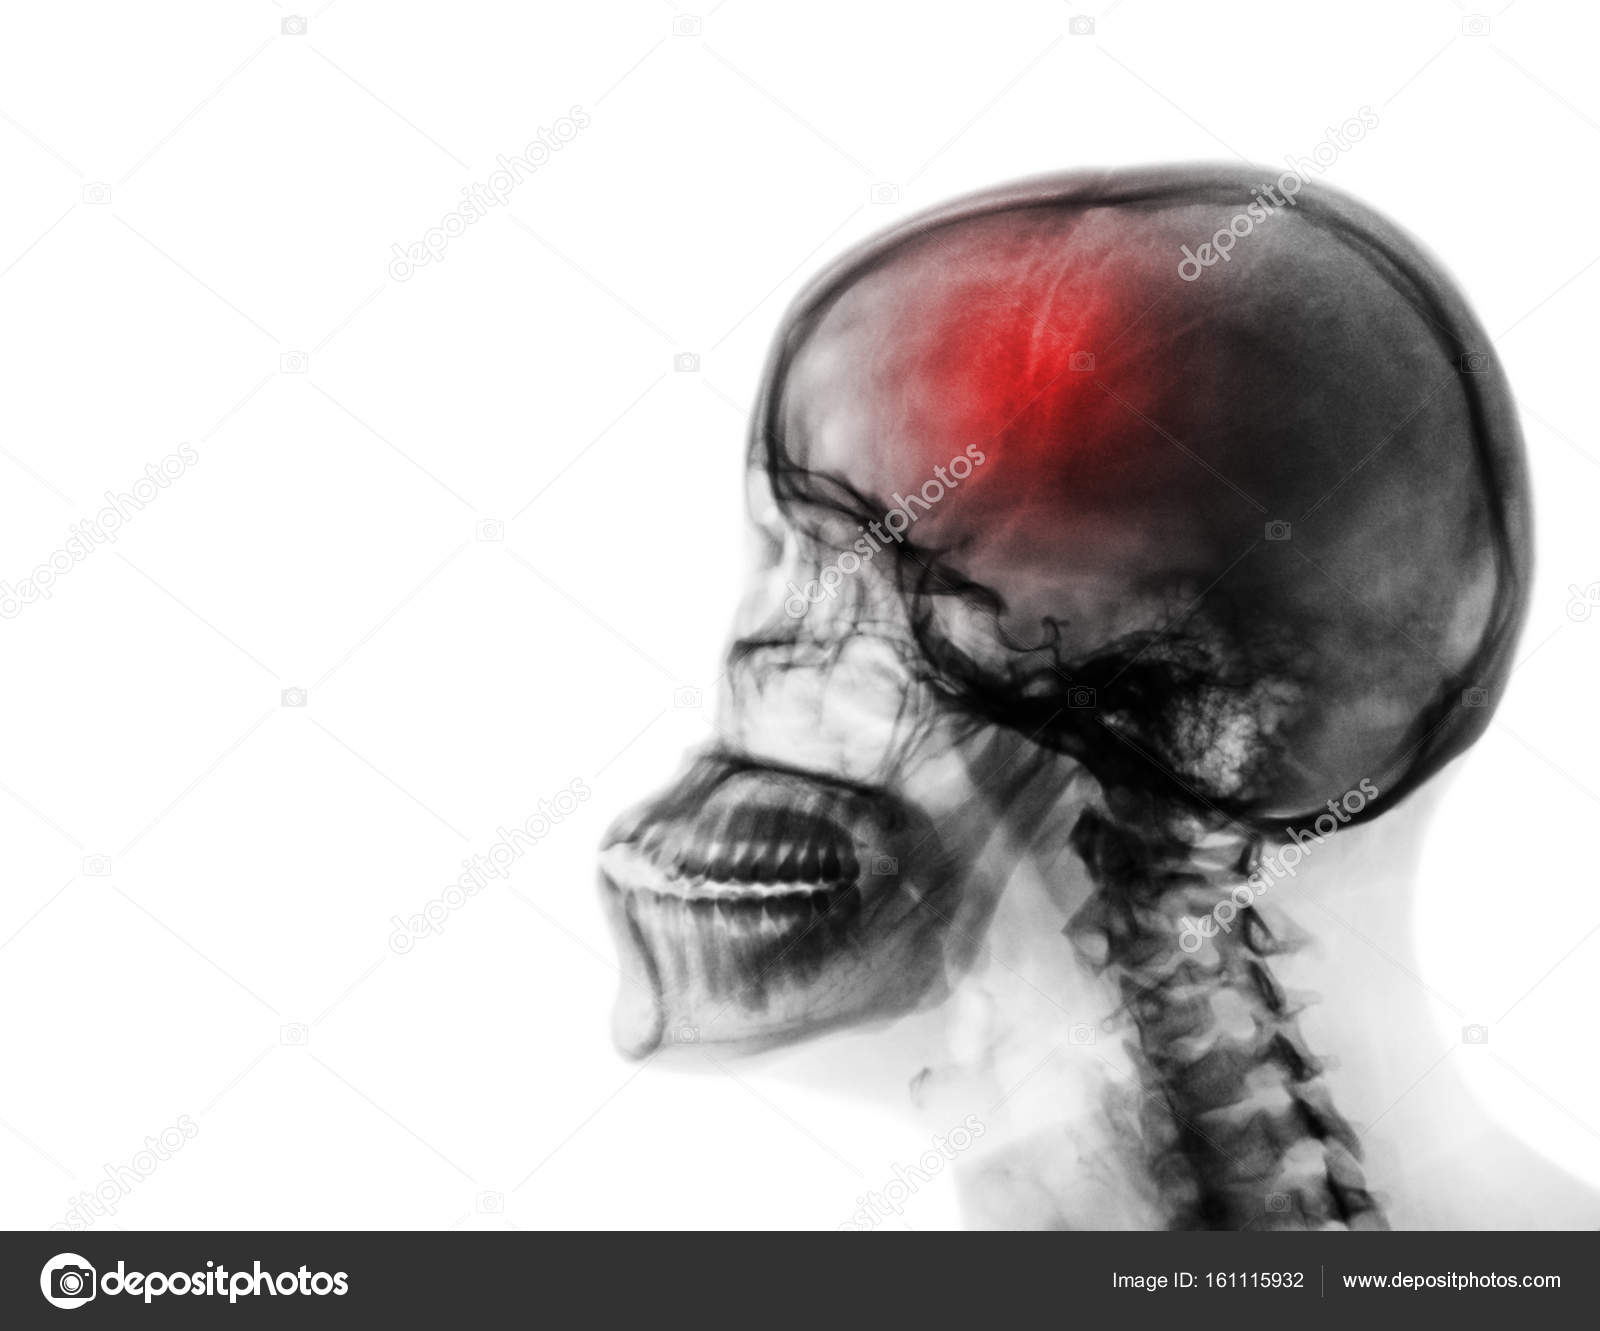 cerebrovascular accident film x ray of human skull and cervical spine